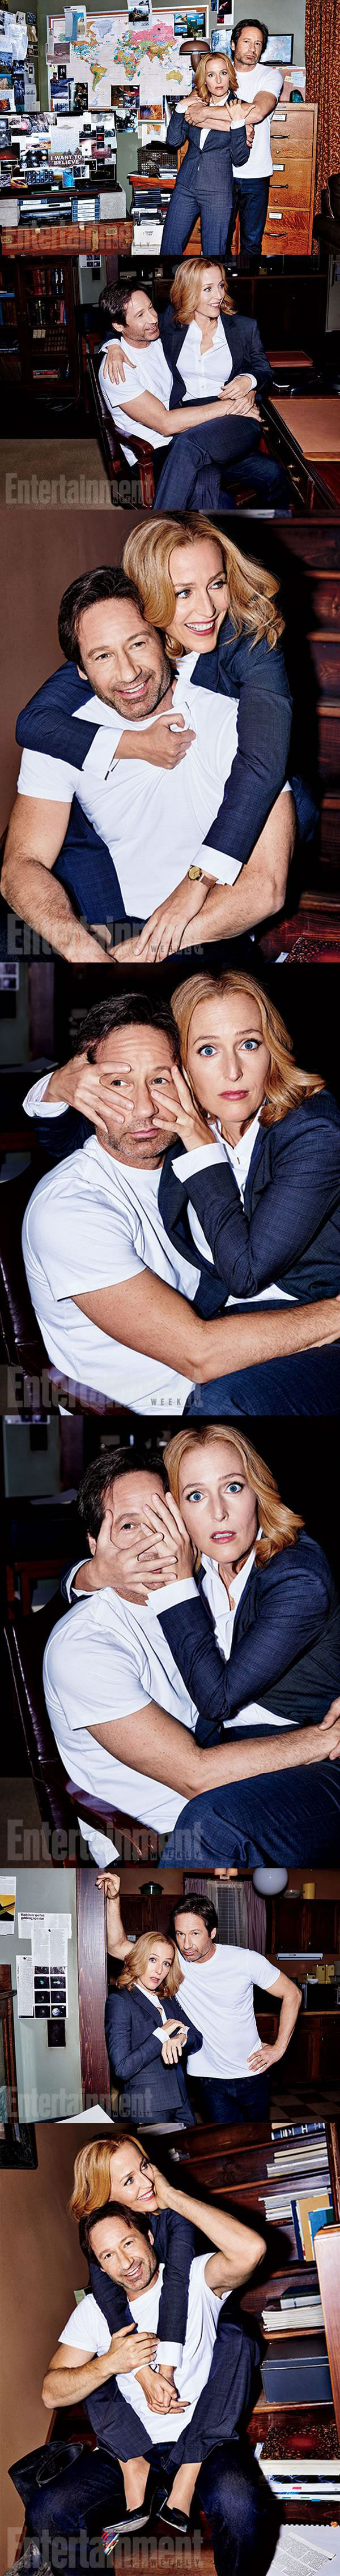 fox mulder and dana scully looking great for the new x-files mini series, david duchovny, gillian anderson